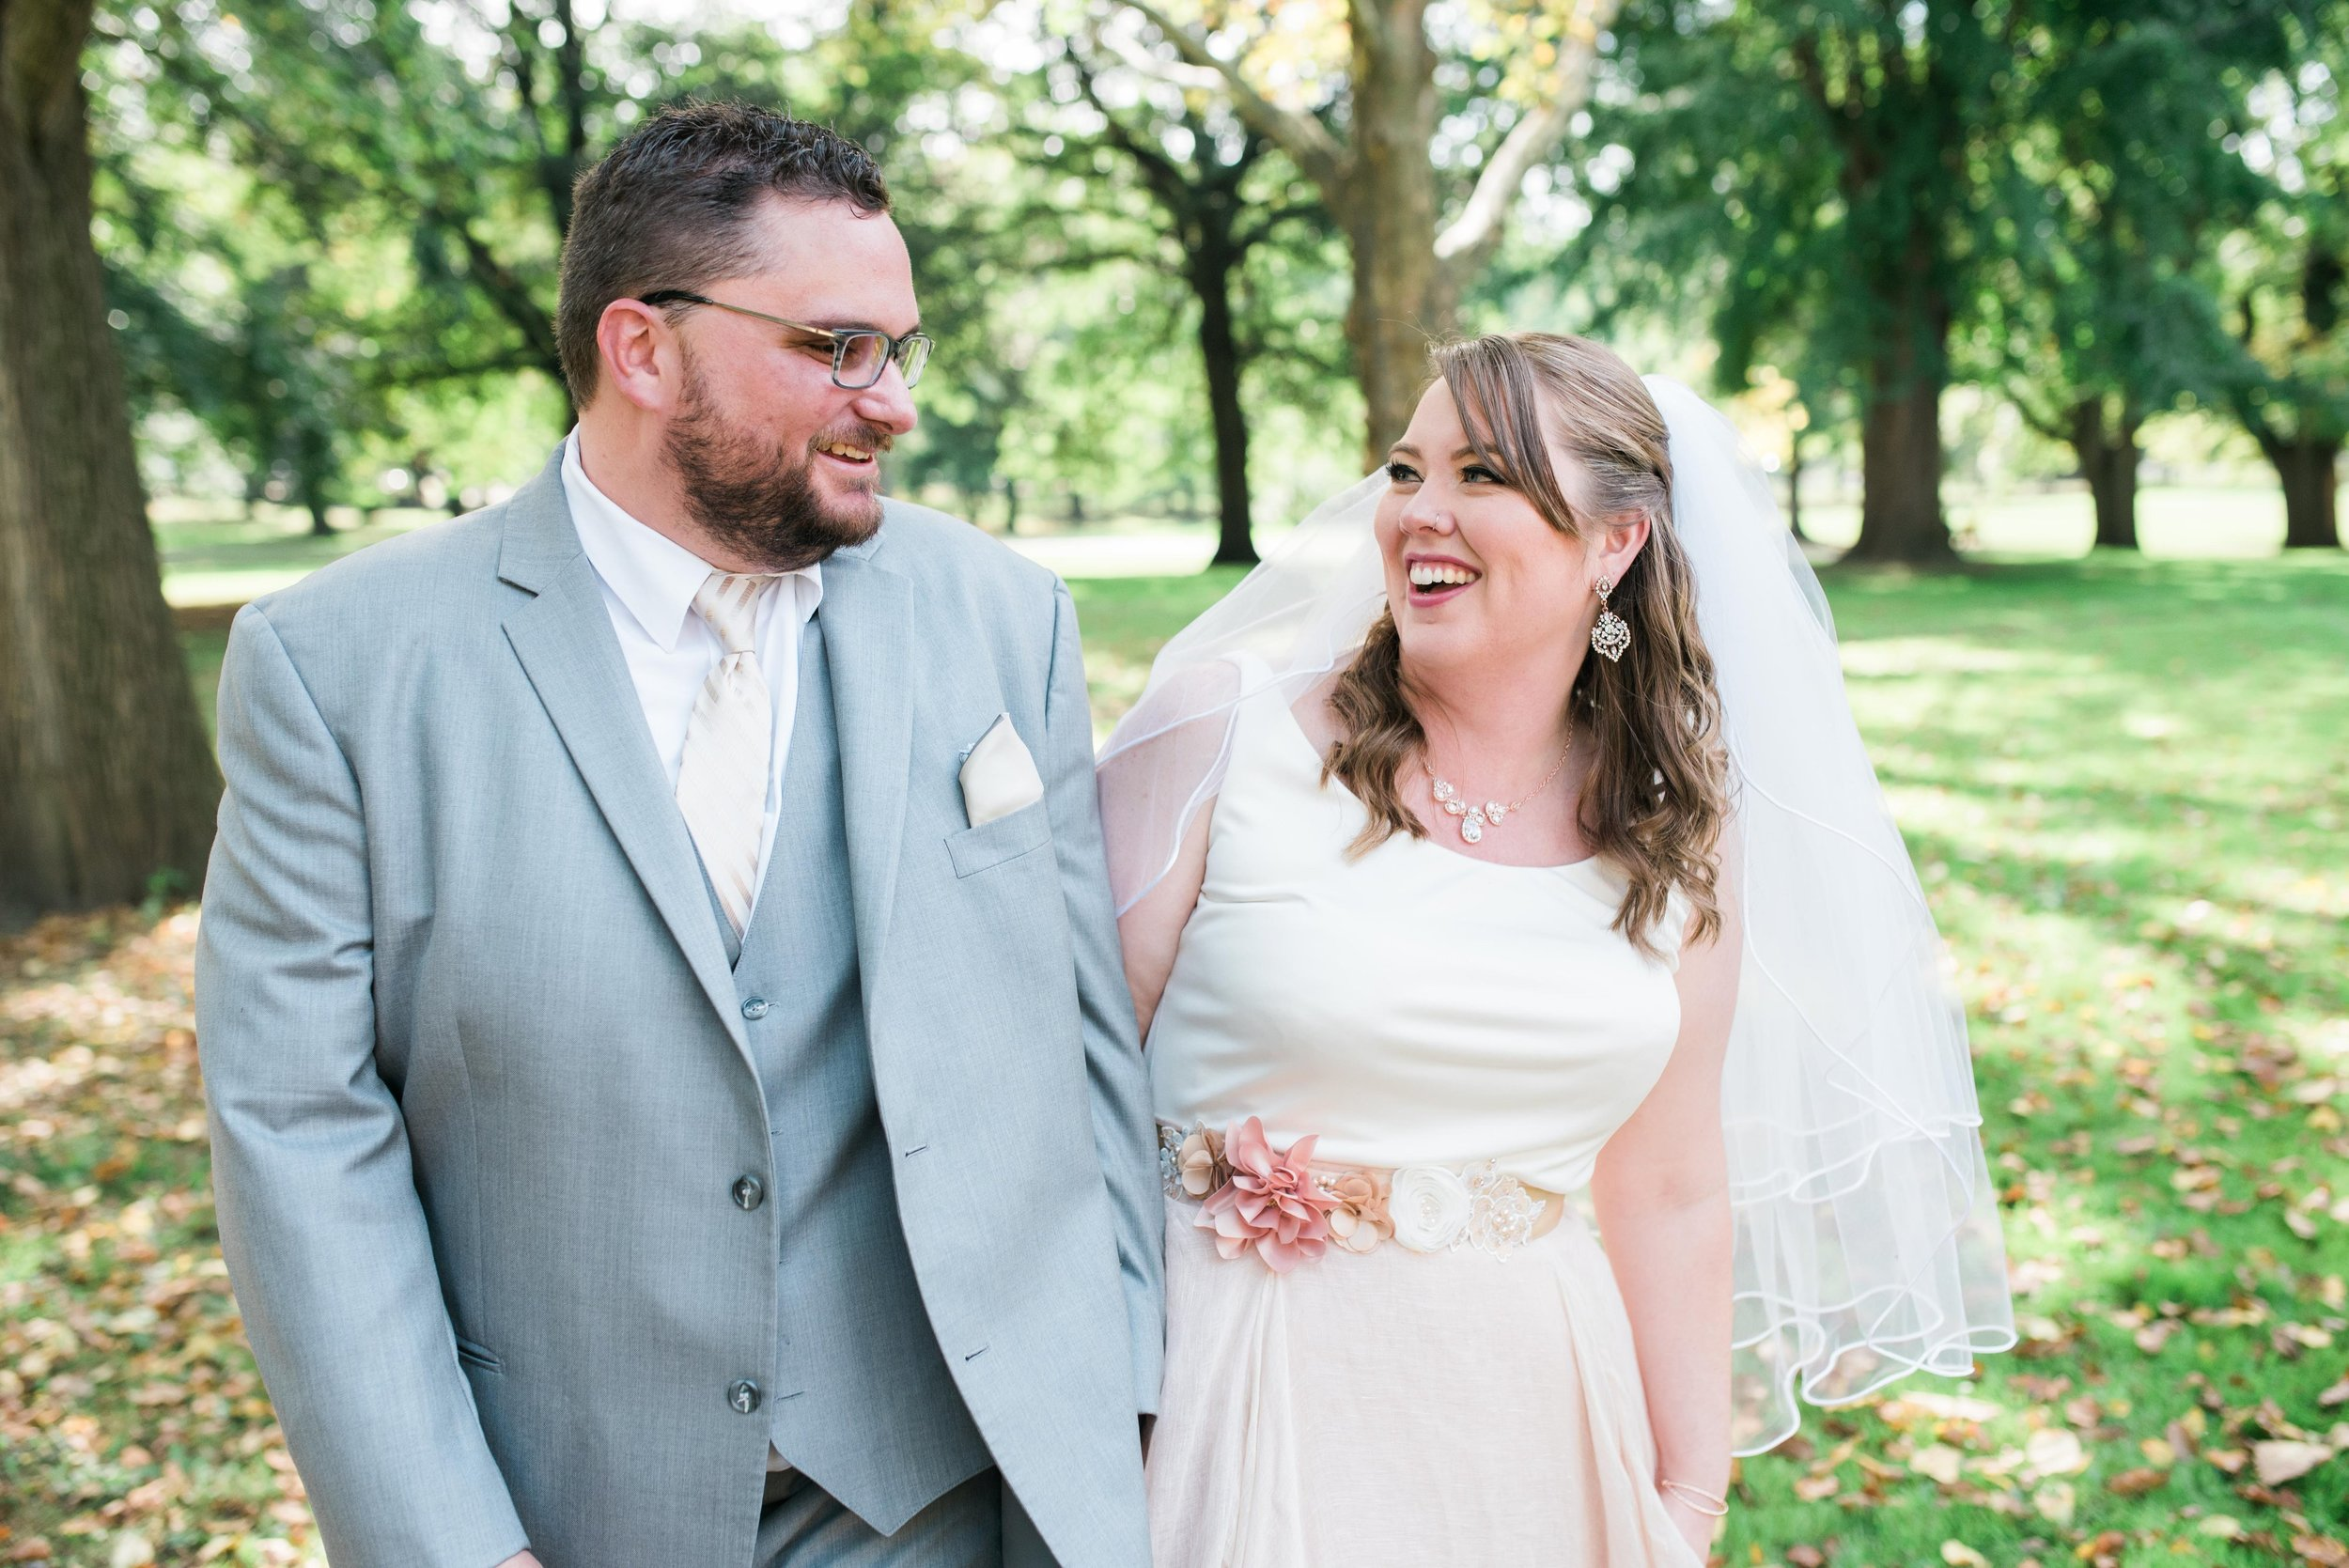 pittsburgh wedding photographer, the aviary